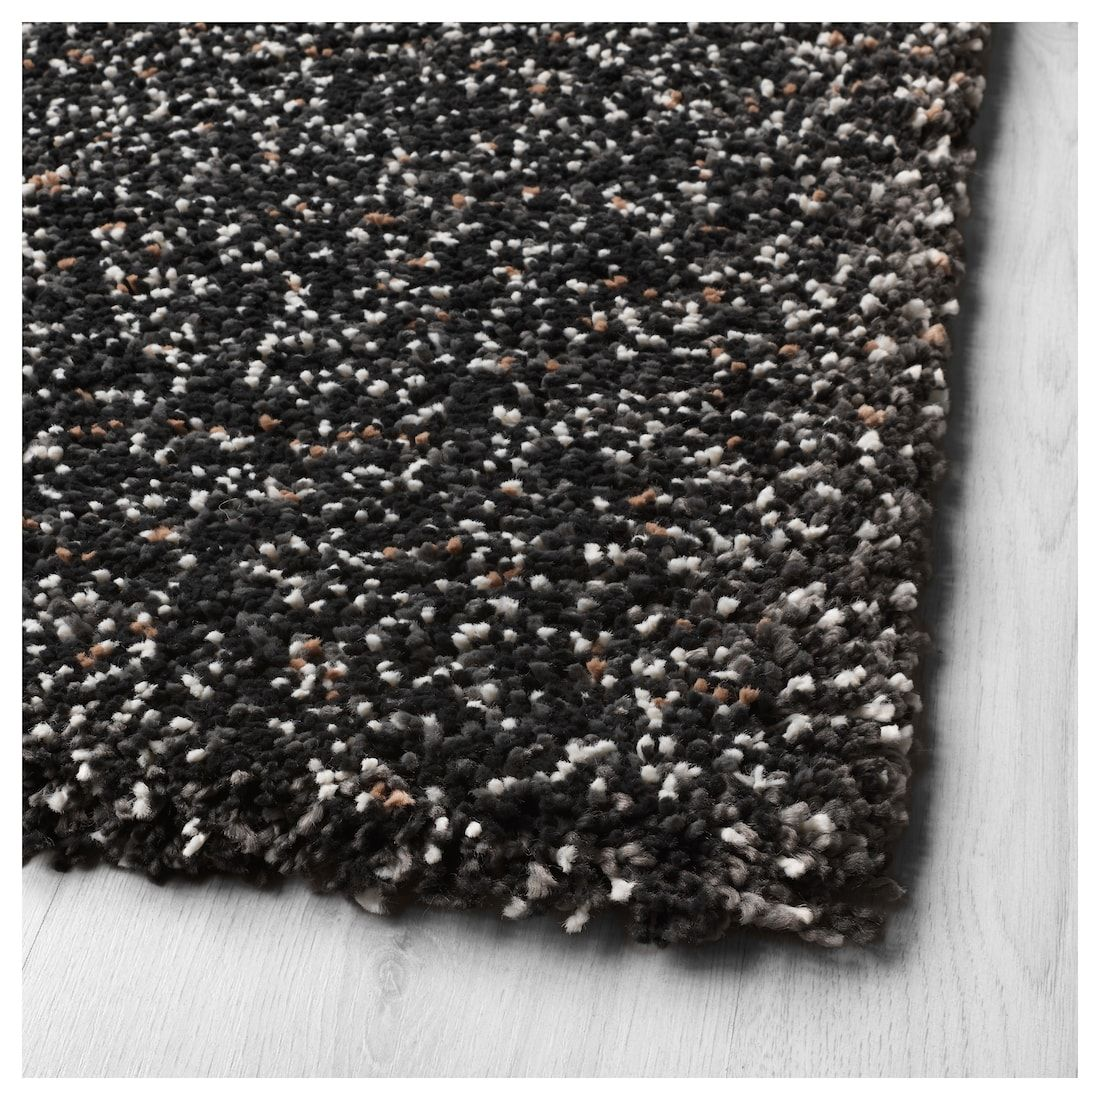 Vindum Rug High Pile Dark Gray 6 7 X8 10 Ikea Rugs Ikea How To Clean Carpet